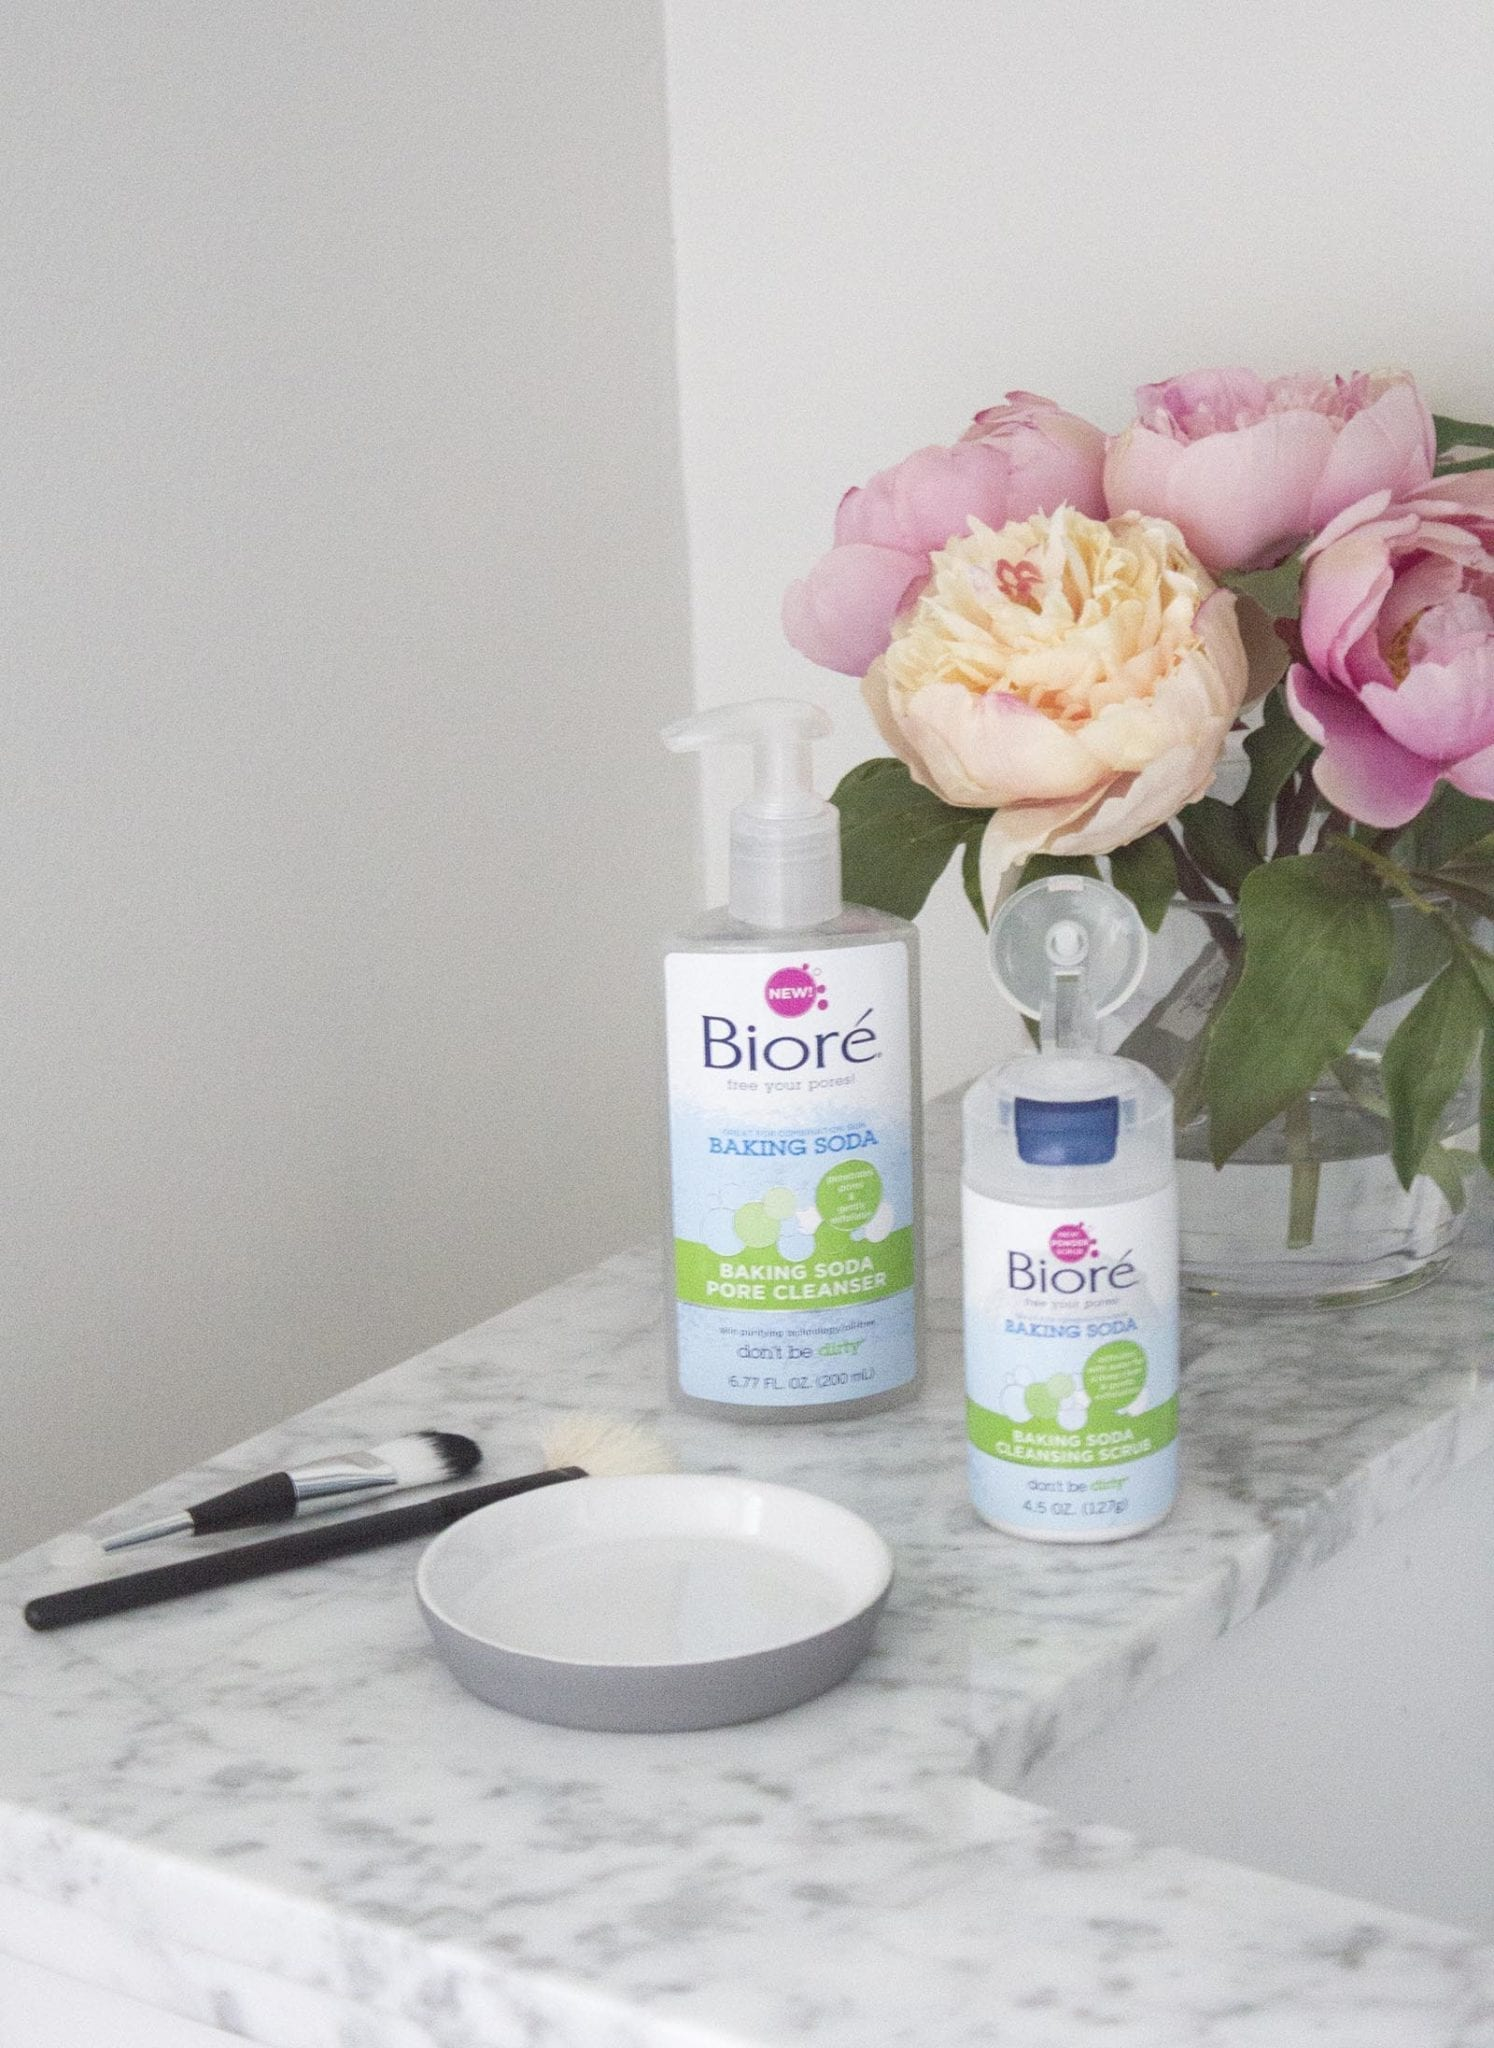 Biore Baking Soda Cleansing Scrub